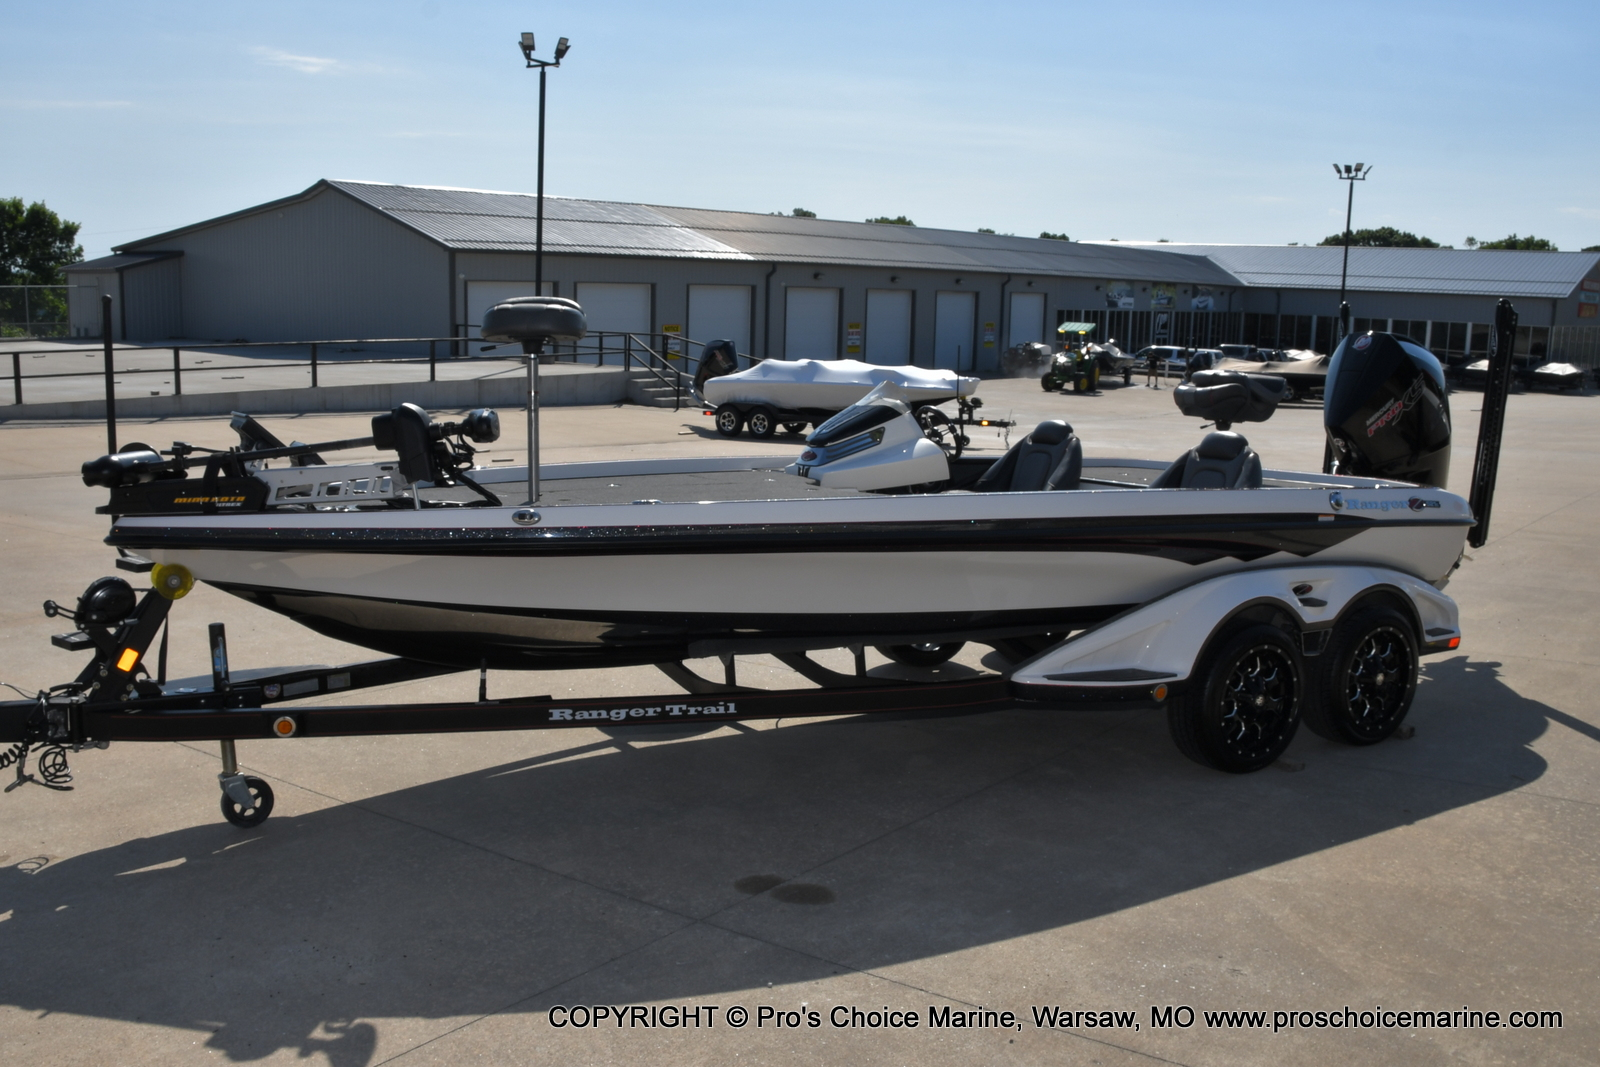 2019 Ranger Boats boat for sale, model of the boat is Z521C Ranger Cup Equipped & Image # 31 of 50